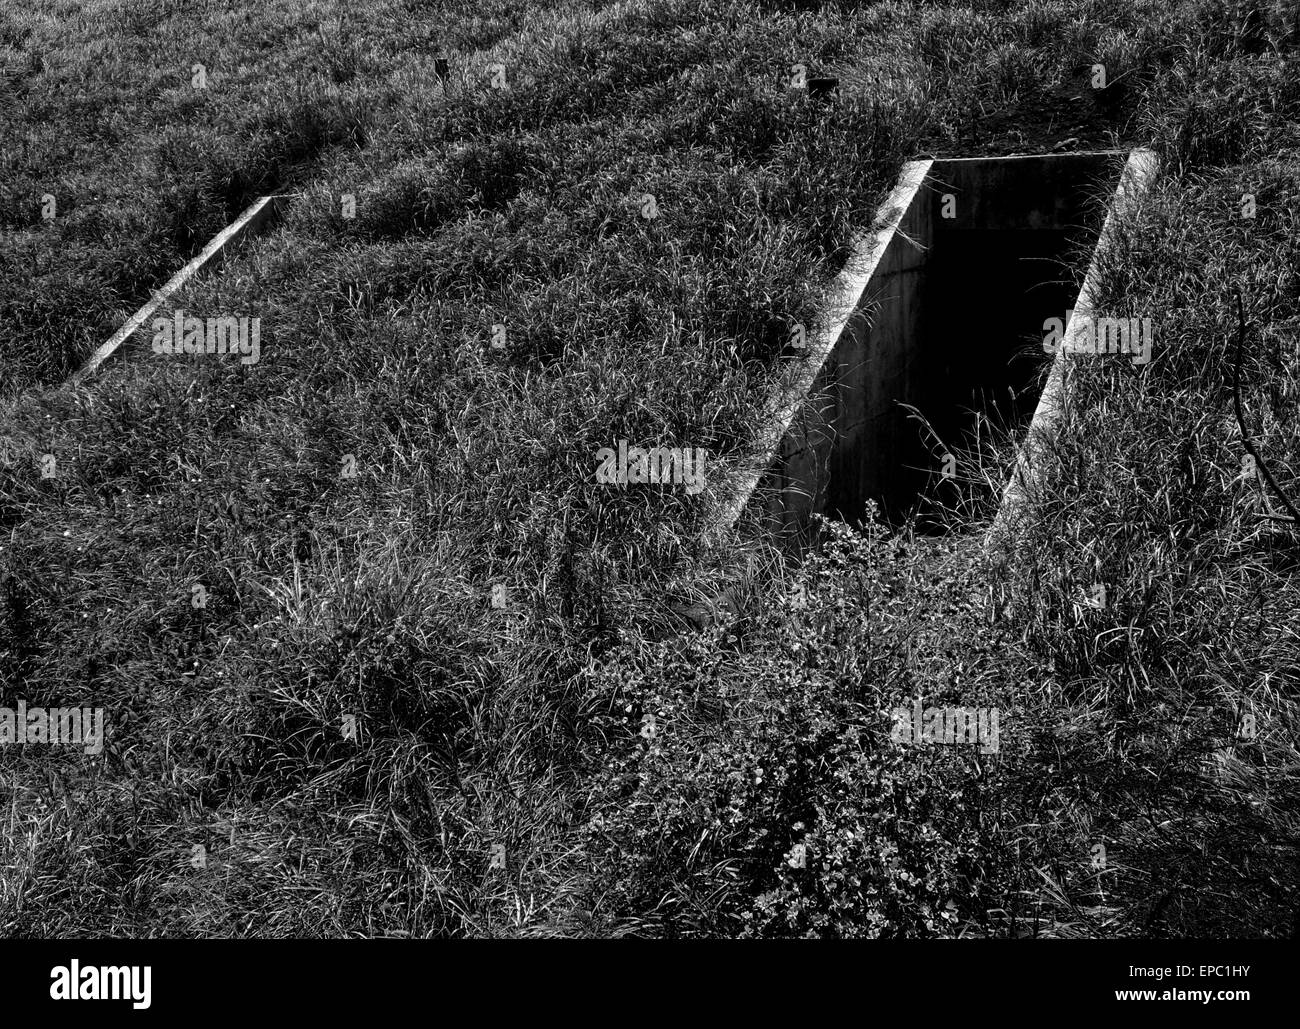 Entrances to WW-II ammo bunkers at an airfield. - Stock Image